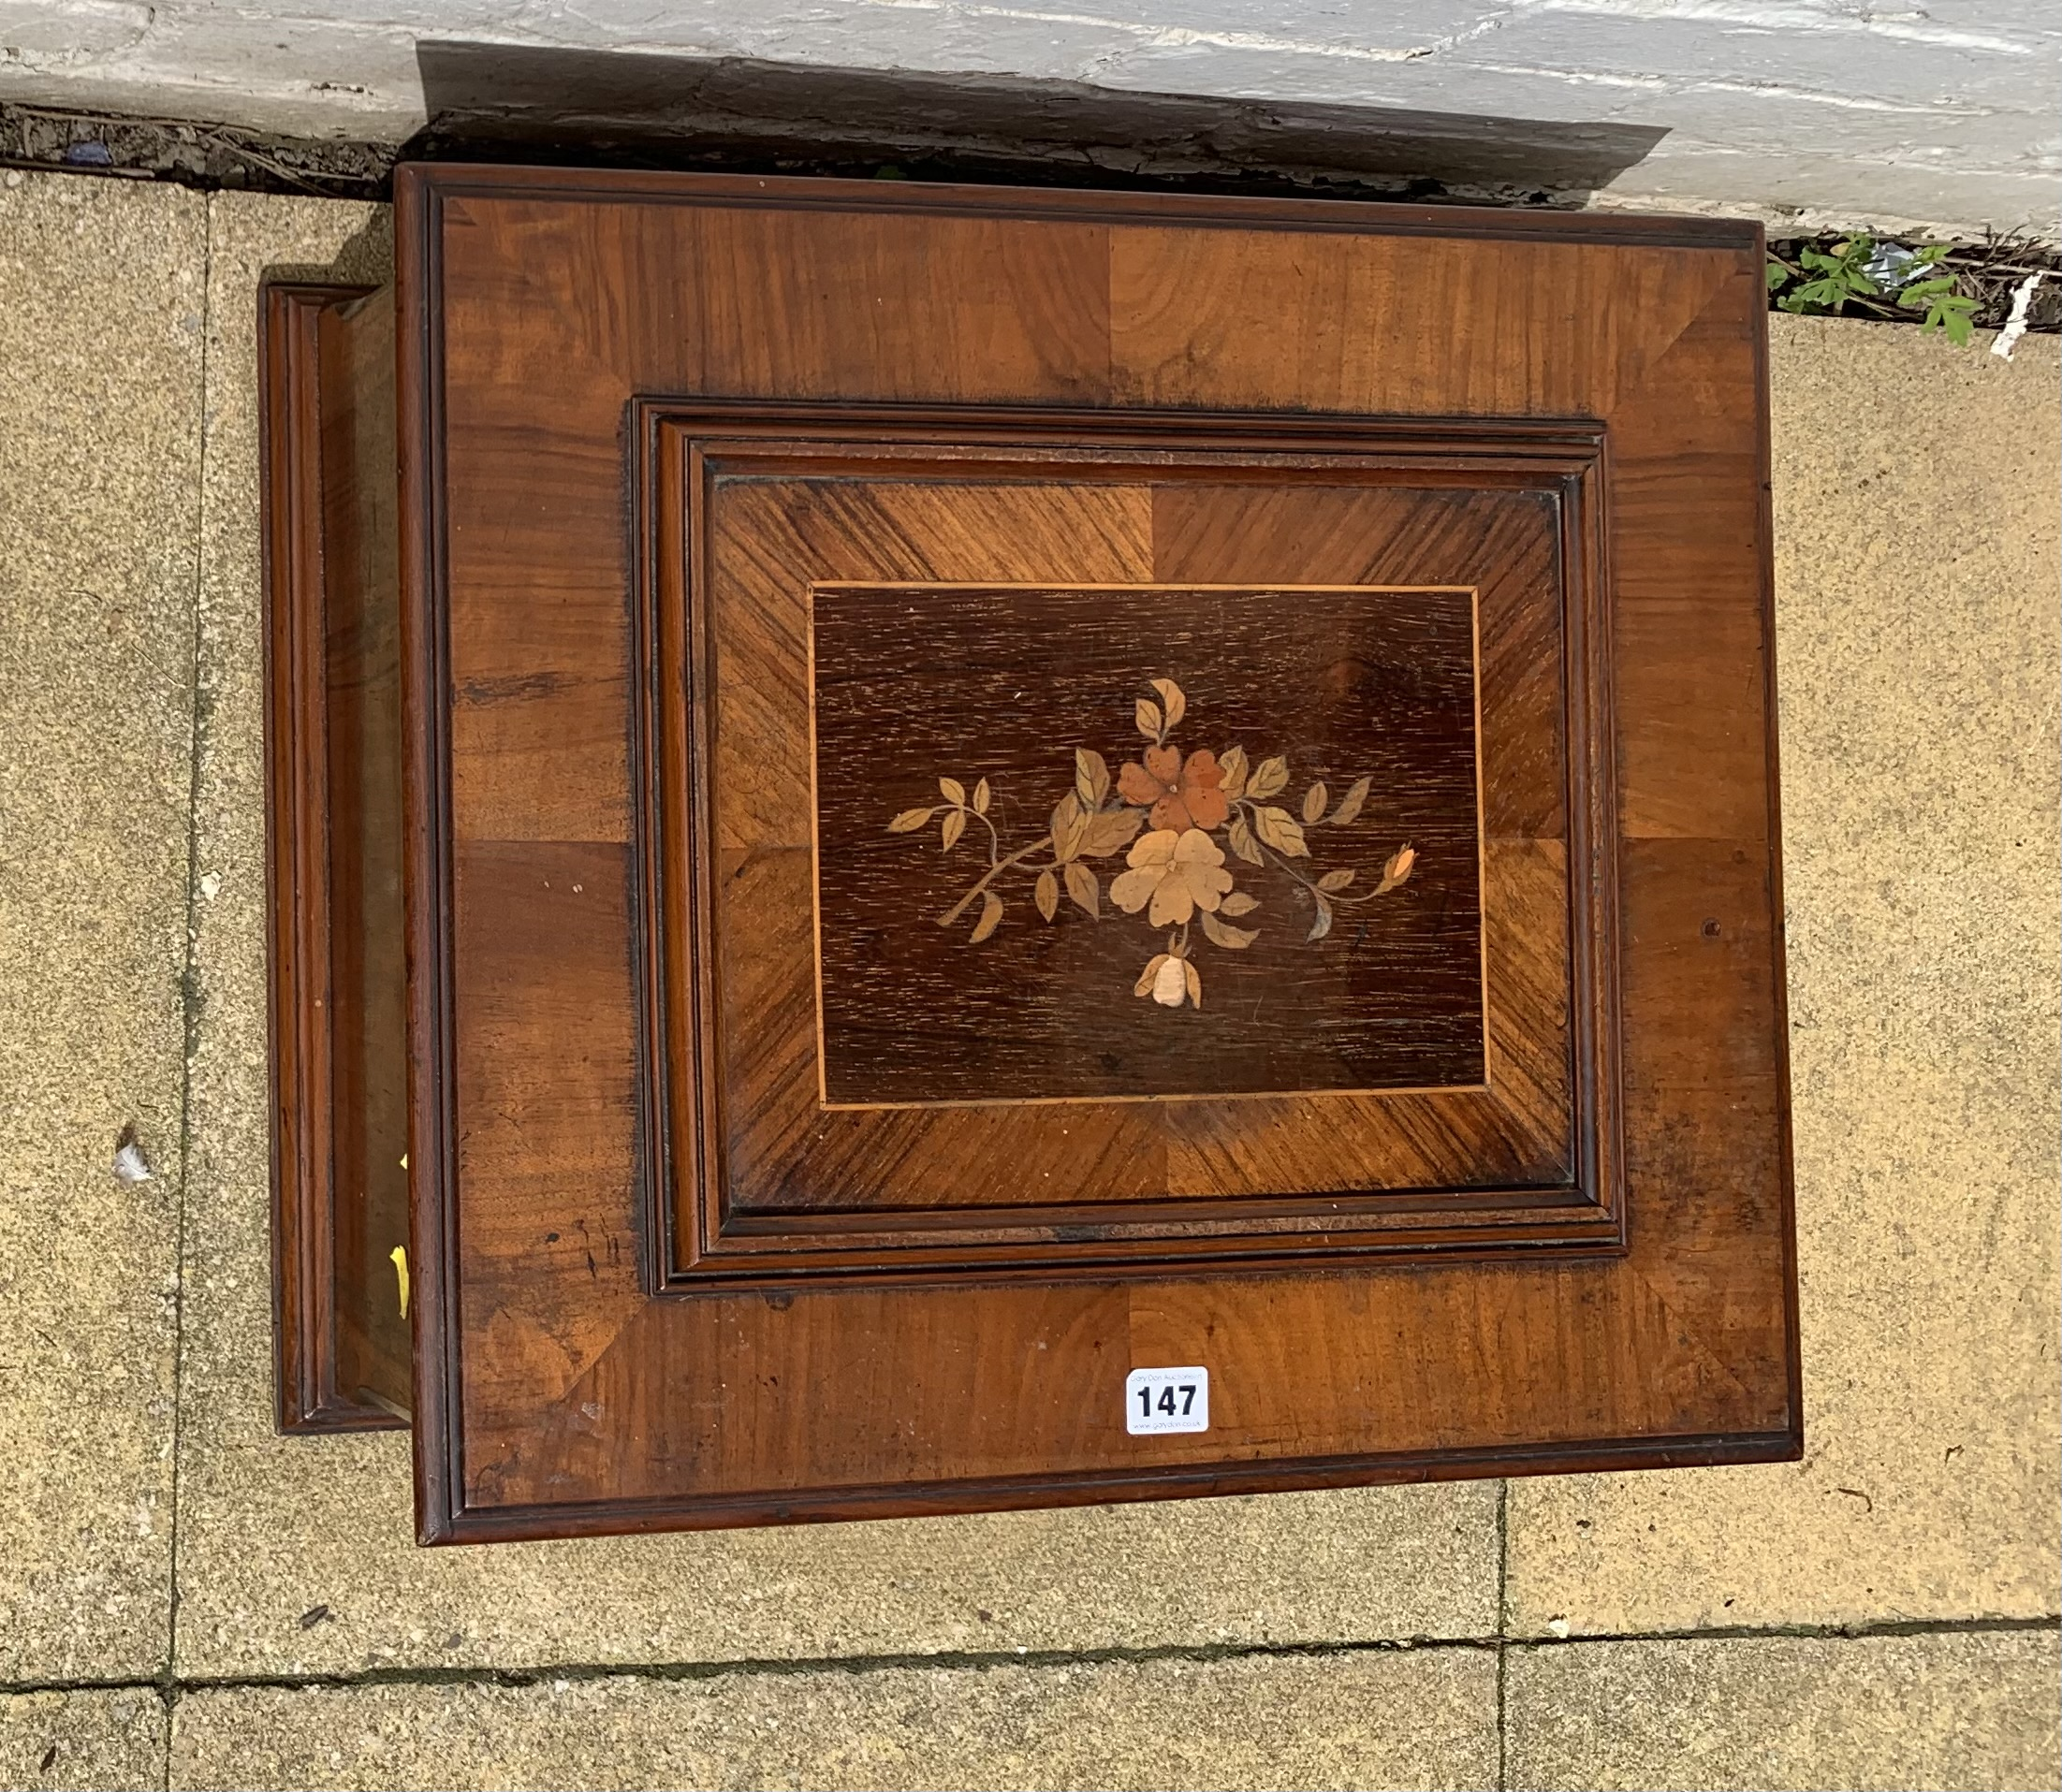 """Antique Polyphon music box in inlaid box, 21"""" long x 18"""" wide with 8 discs. Working - Image 2 of 15"""